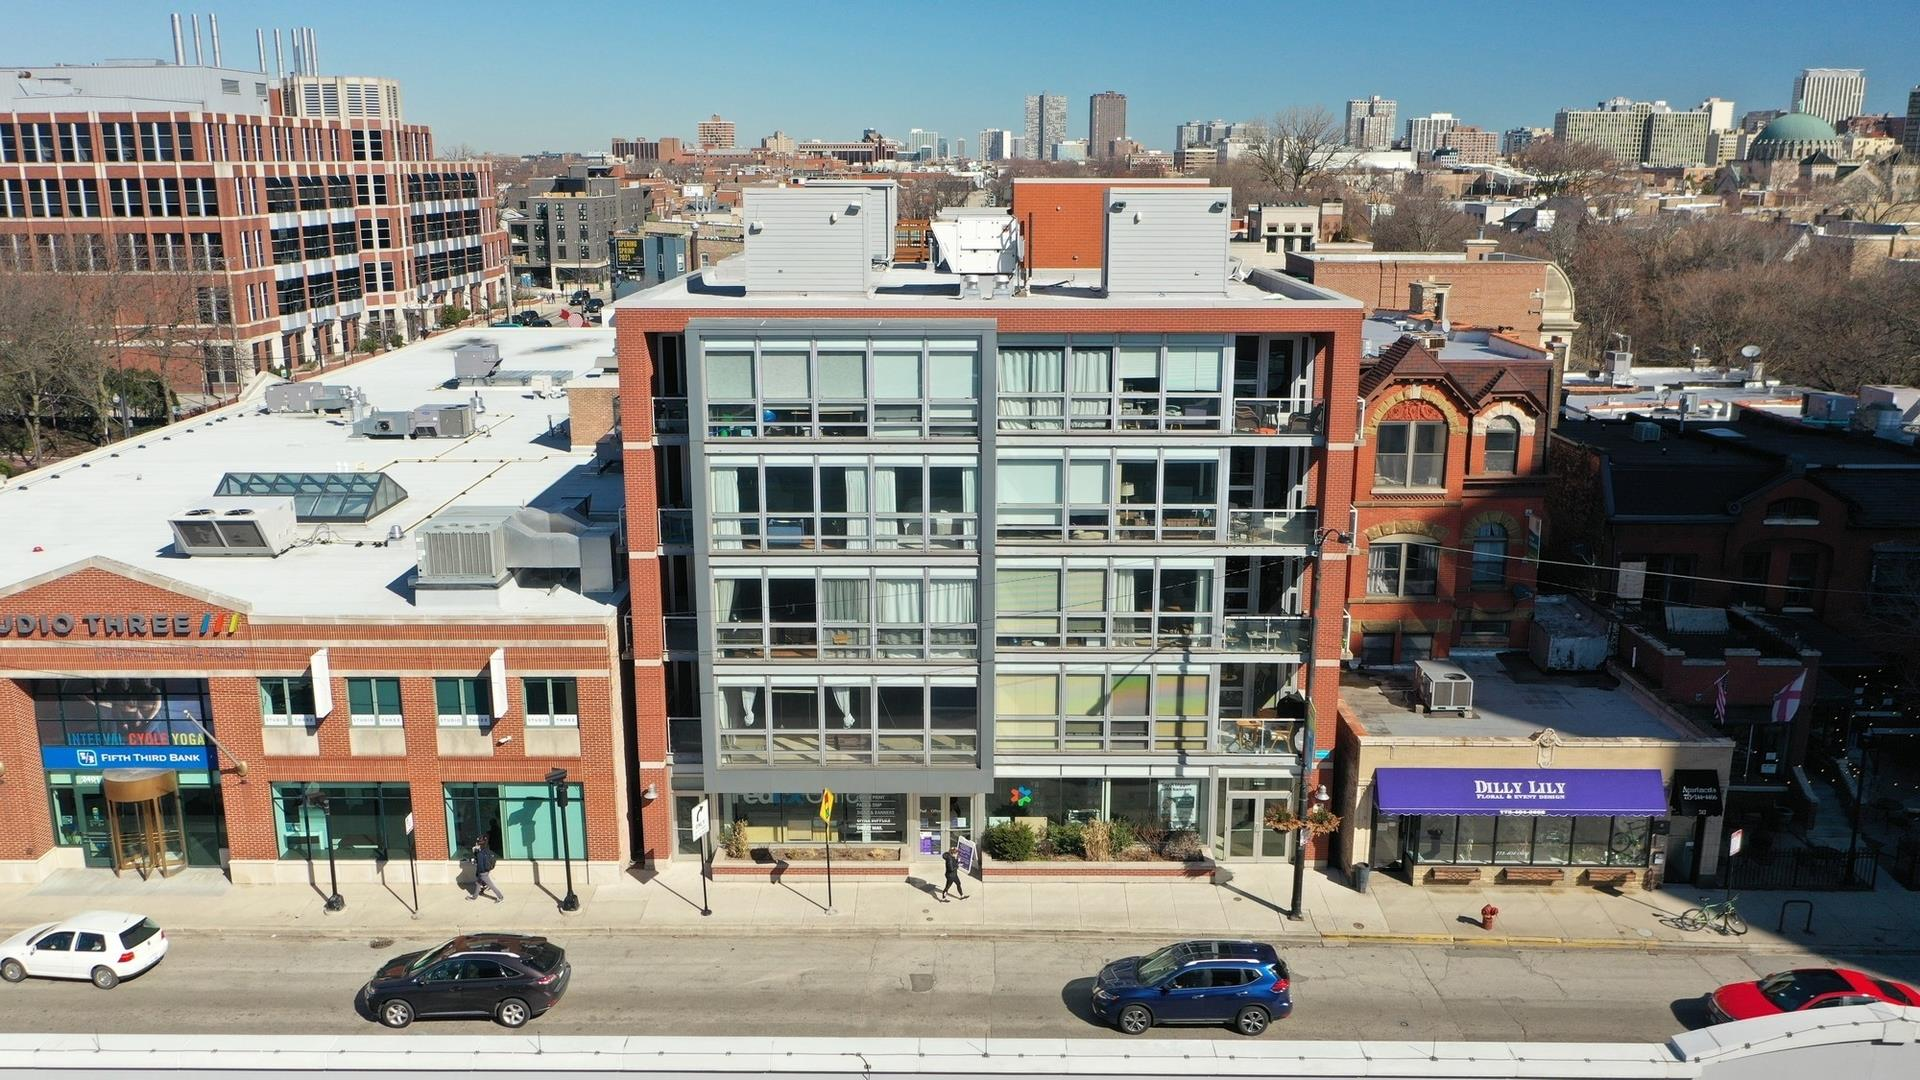 744 W Fullerton Parkway #303, Chicago, IL 60614 - #: 11057777